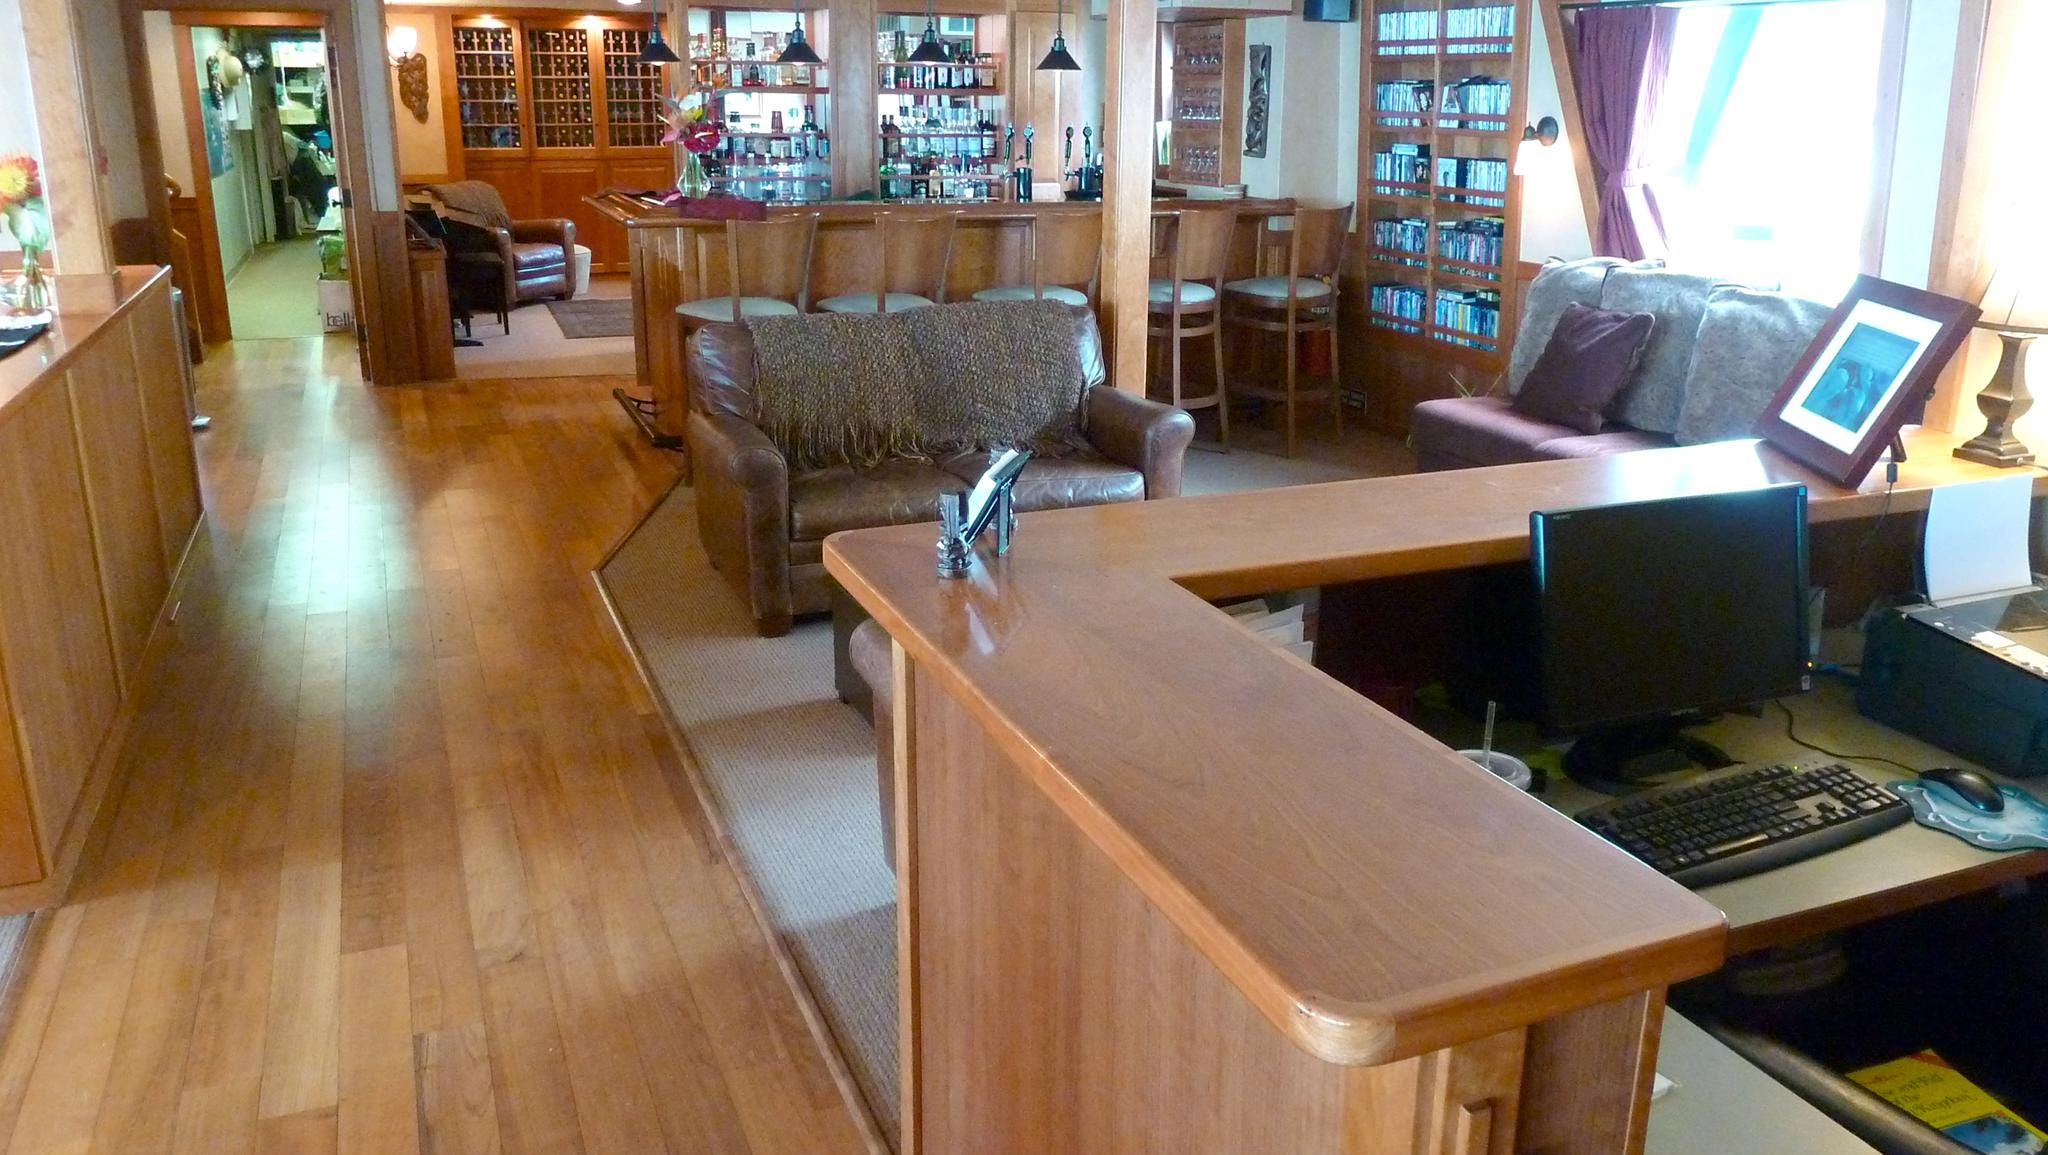 A guest relations desk is located at the aft end of the public spaces on Main Deck.